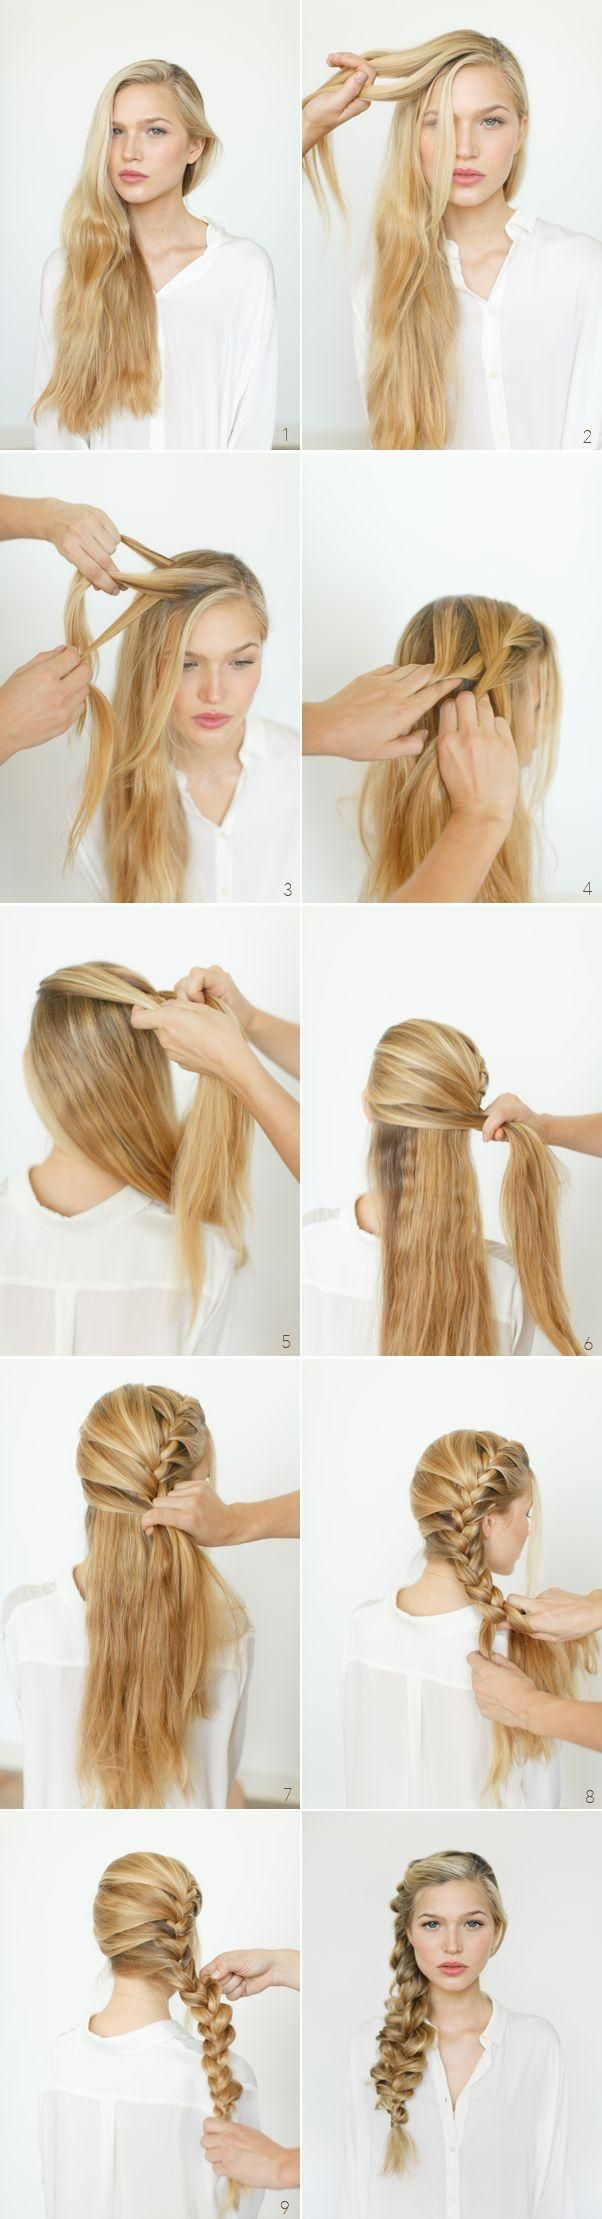 Side French braid